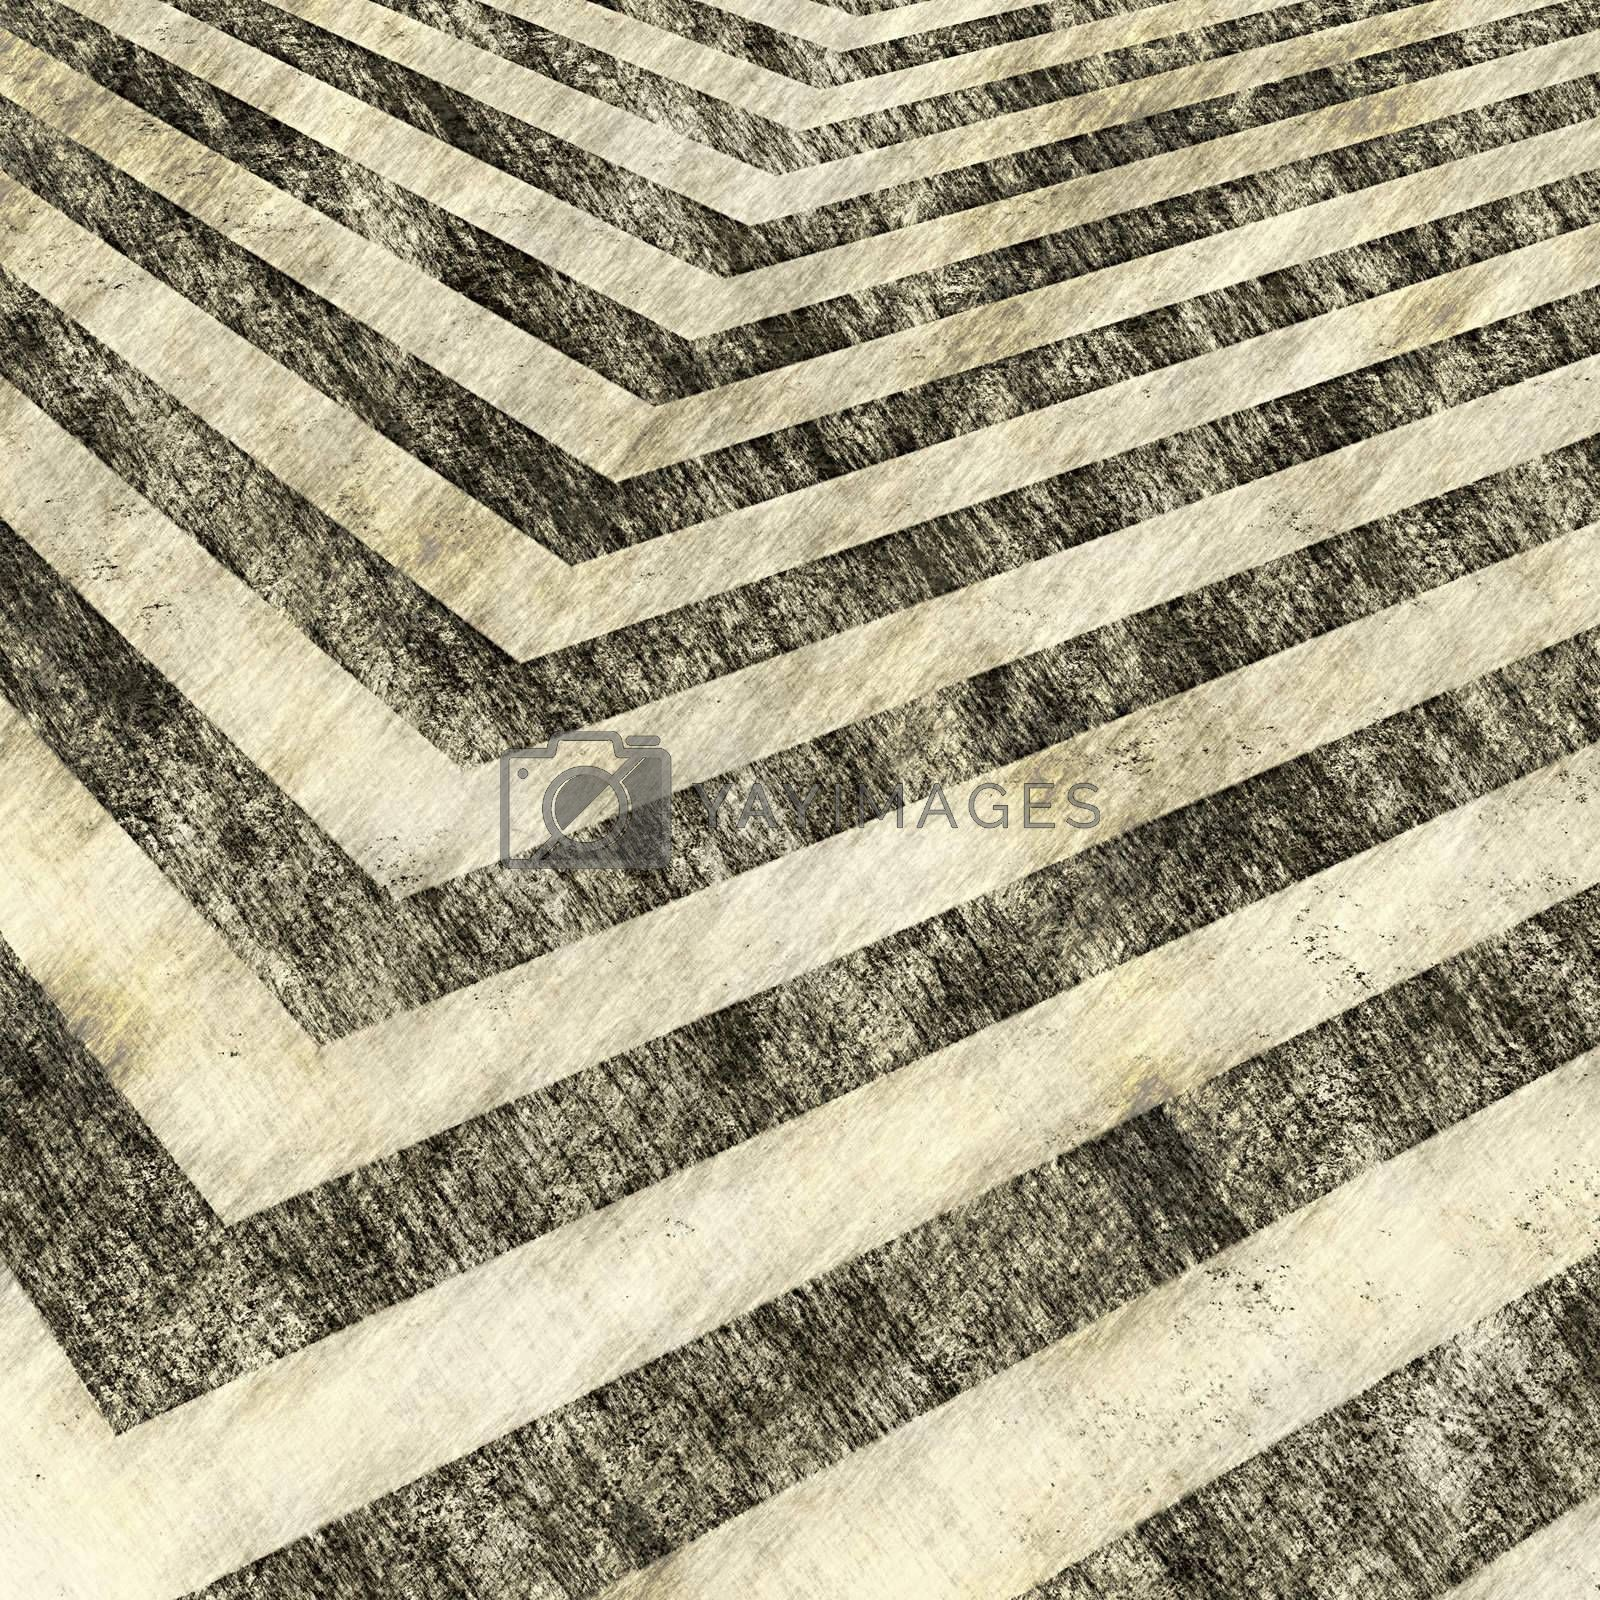 A sepia toned hazard stripes background with an aged vintage texture.